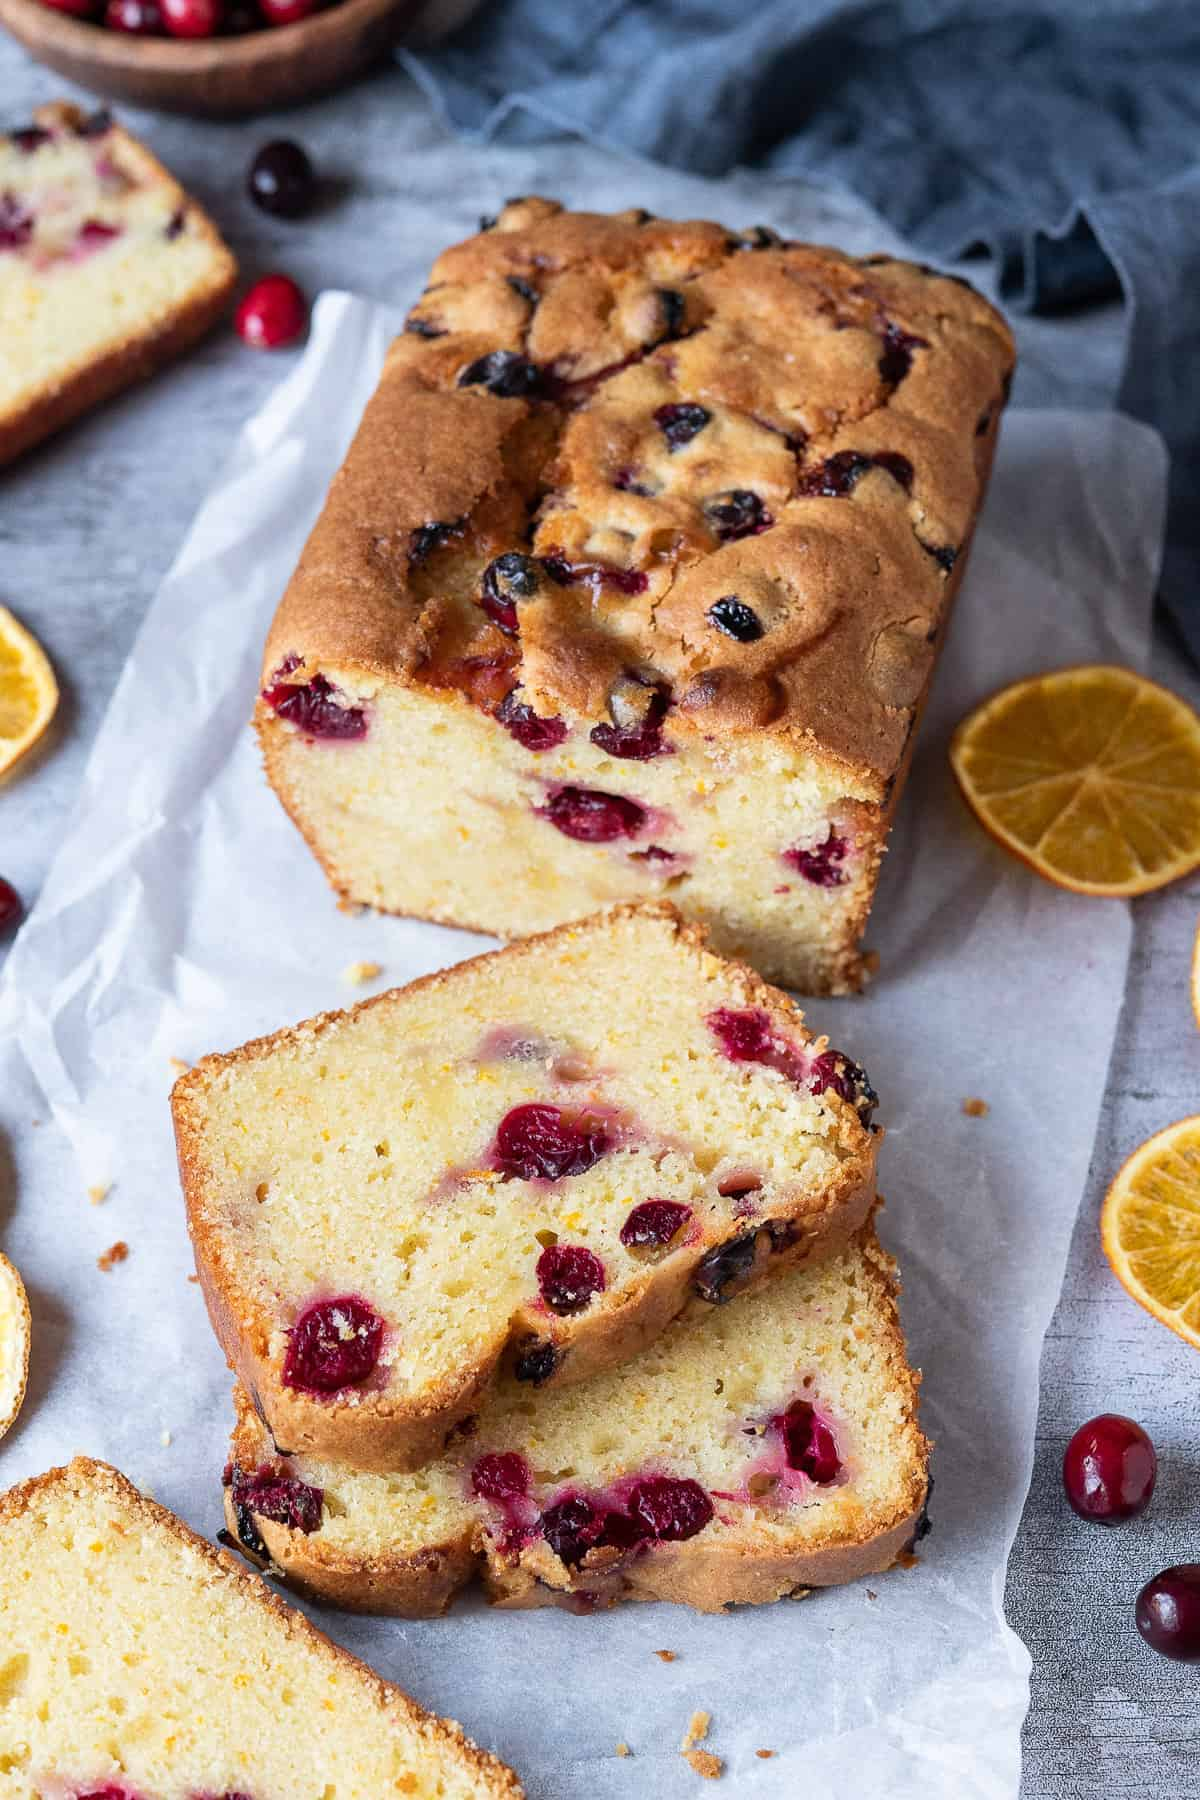 Vegan orange cranberry cake on a sheet of white baking parchment with dried orange slices and fresh cranberries.